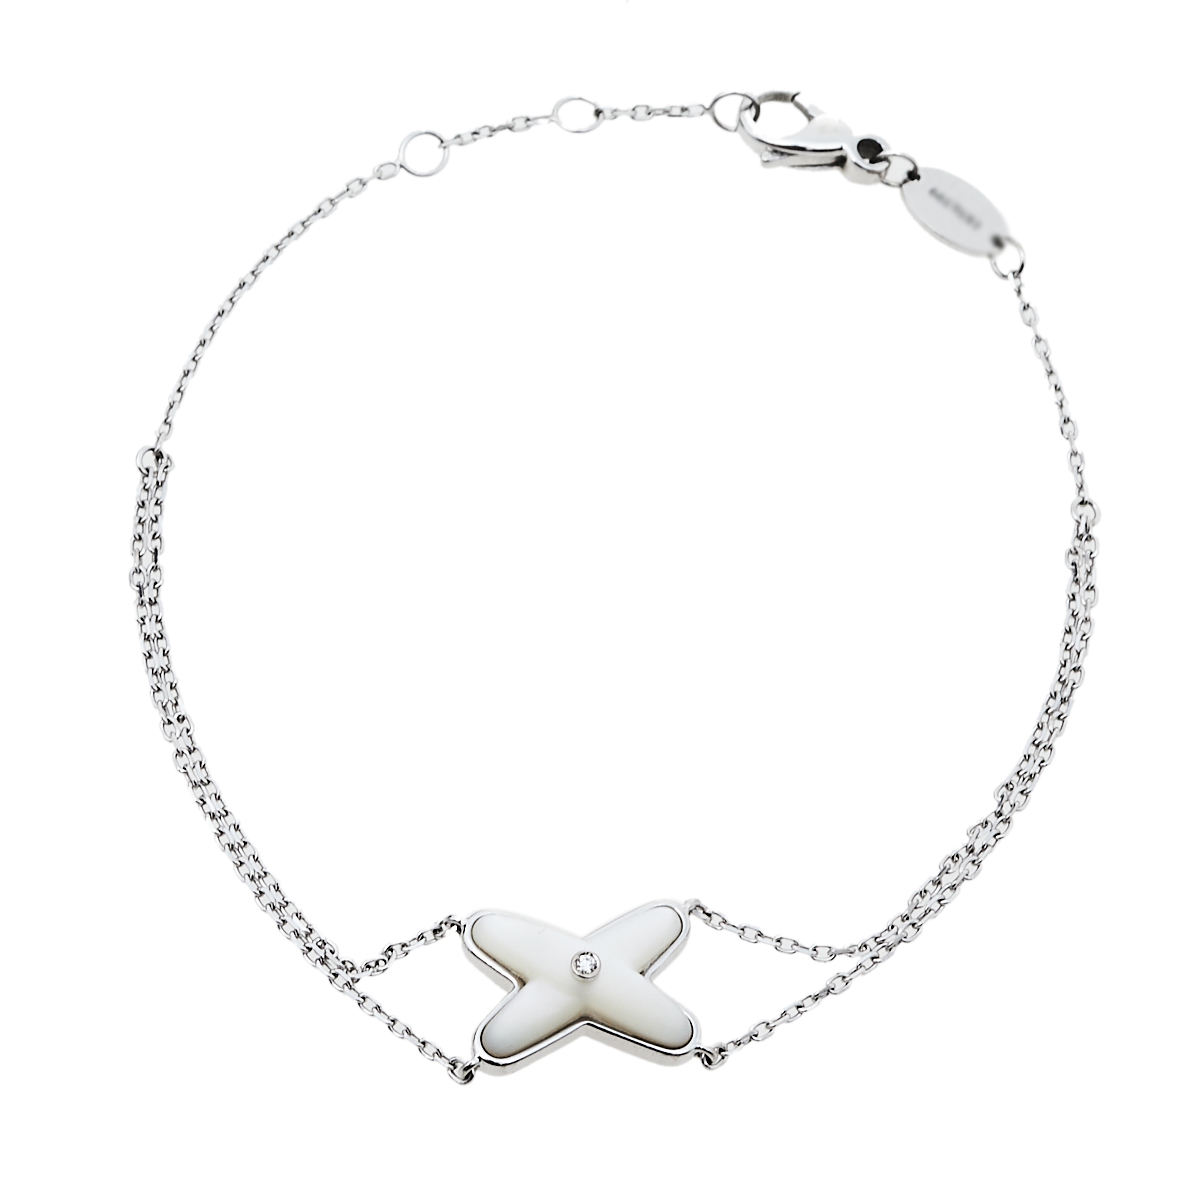 Pre-owned Chaumet Jeux De Liens Diamond Mother Of Pearl 18k White Gold Bracelet